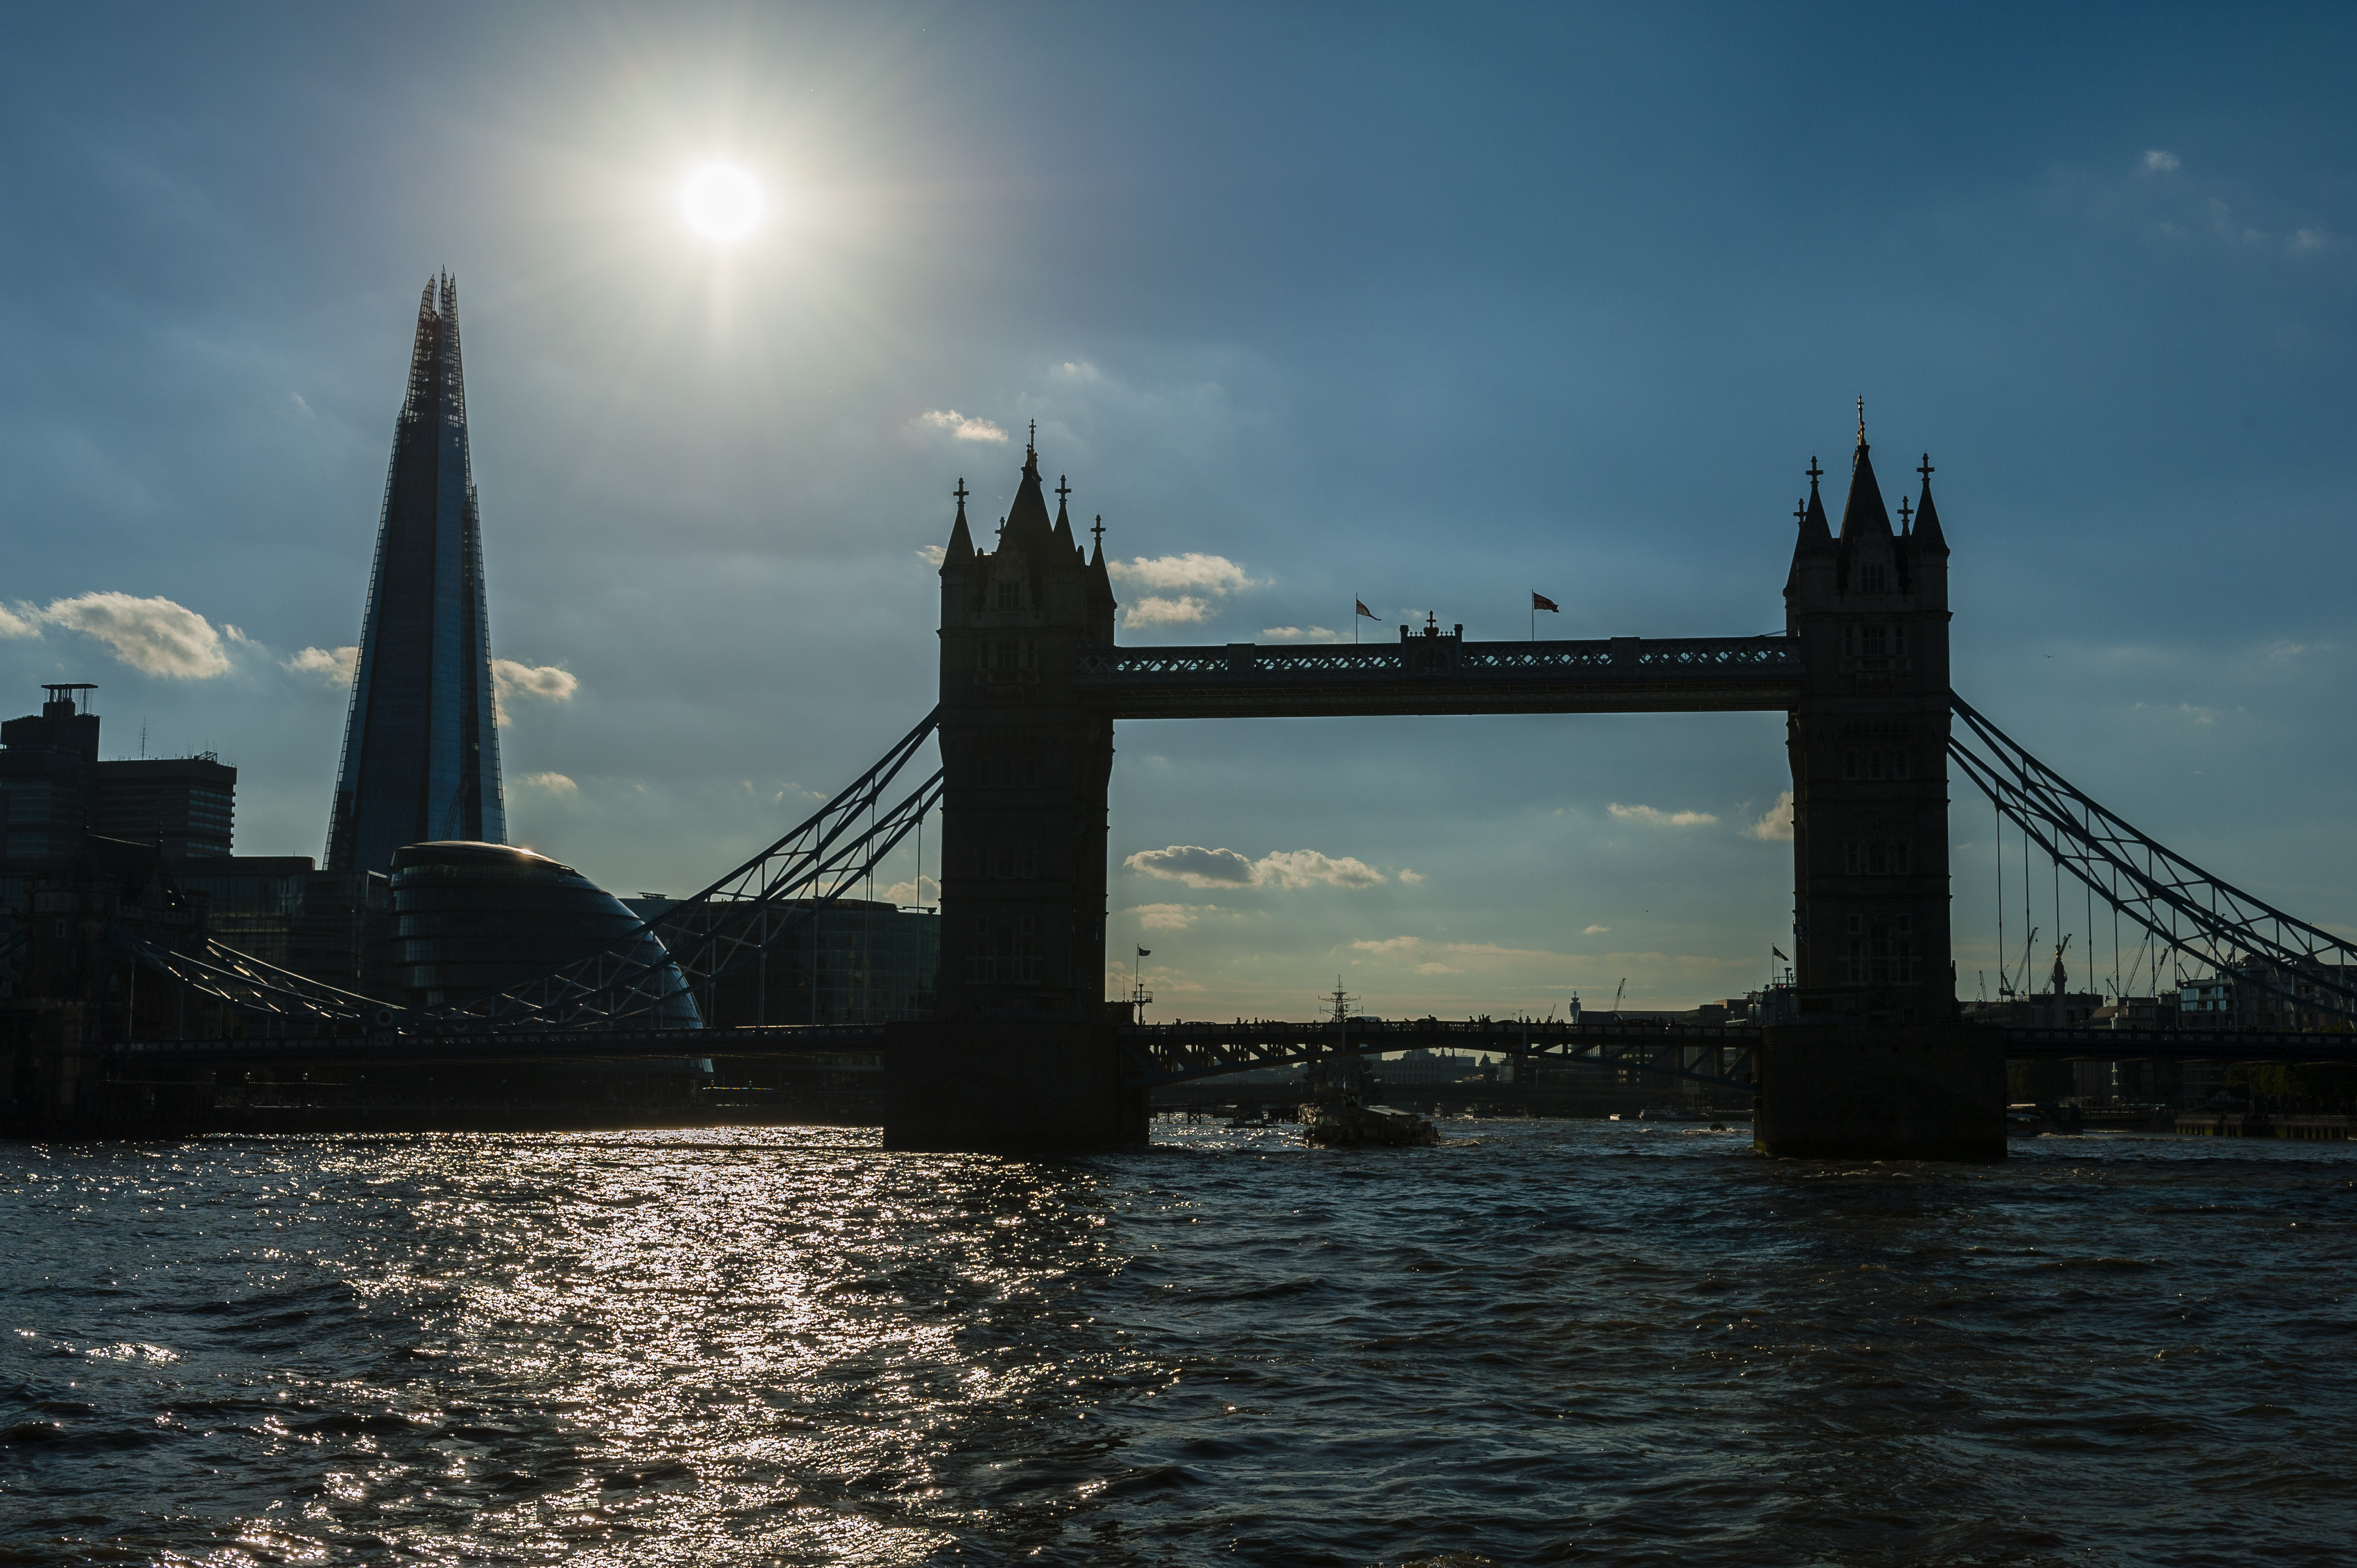 TowerBridge_DSC6014